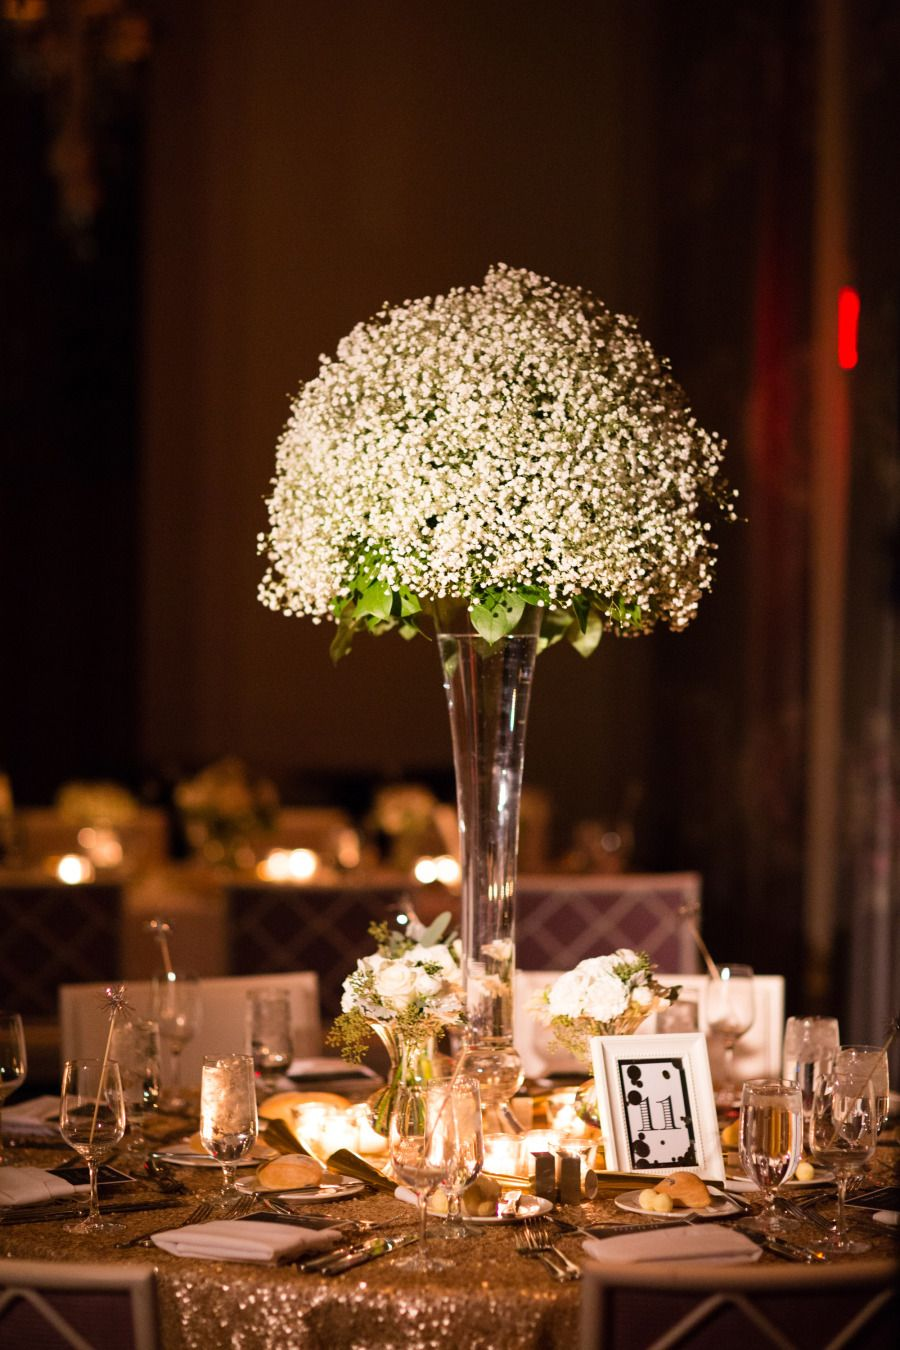 Glamorous new years eve wedding in philly wedding centerpieces glamorous new years eve wedding in philly wedding centerpieces cheapwedding reviewsmspy